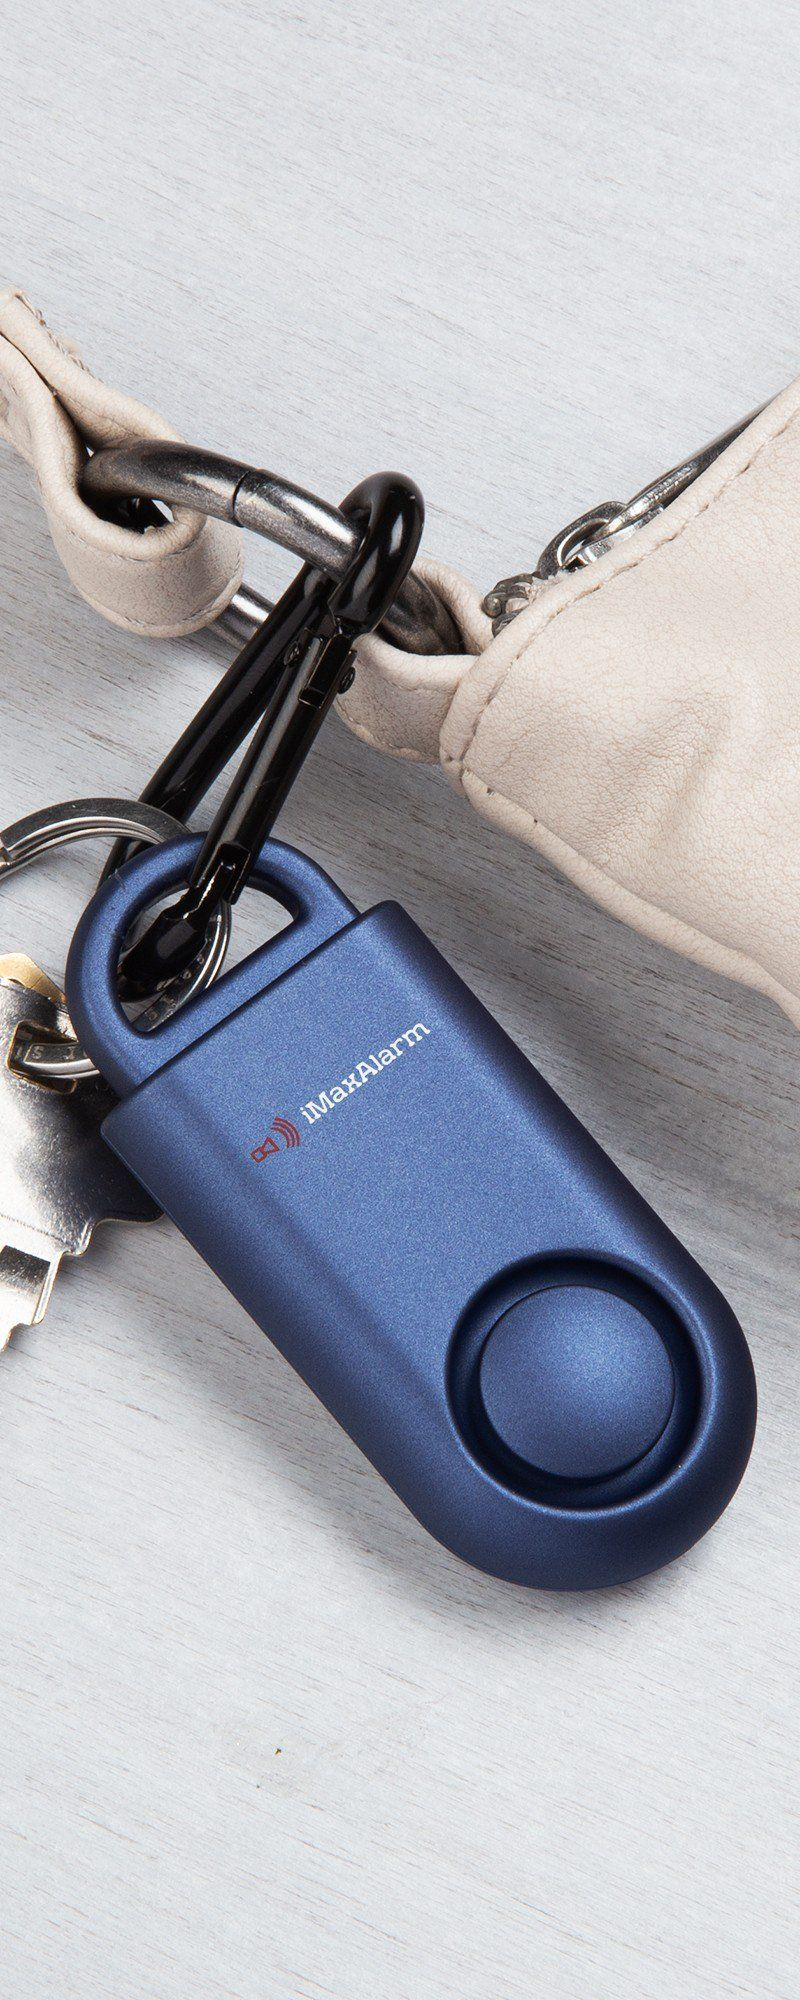 Designed to mimic a key fob, this small keyring alarm is a